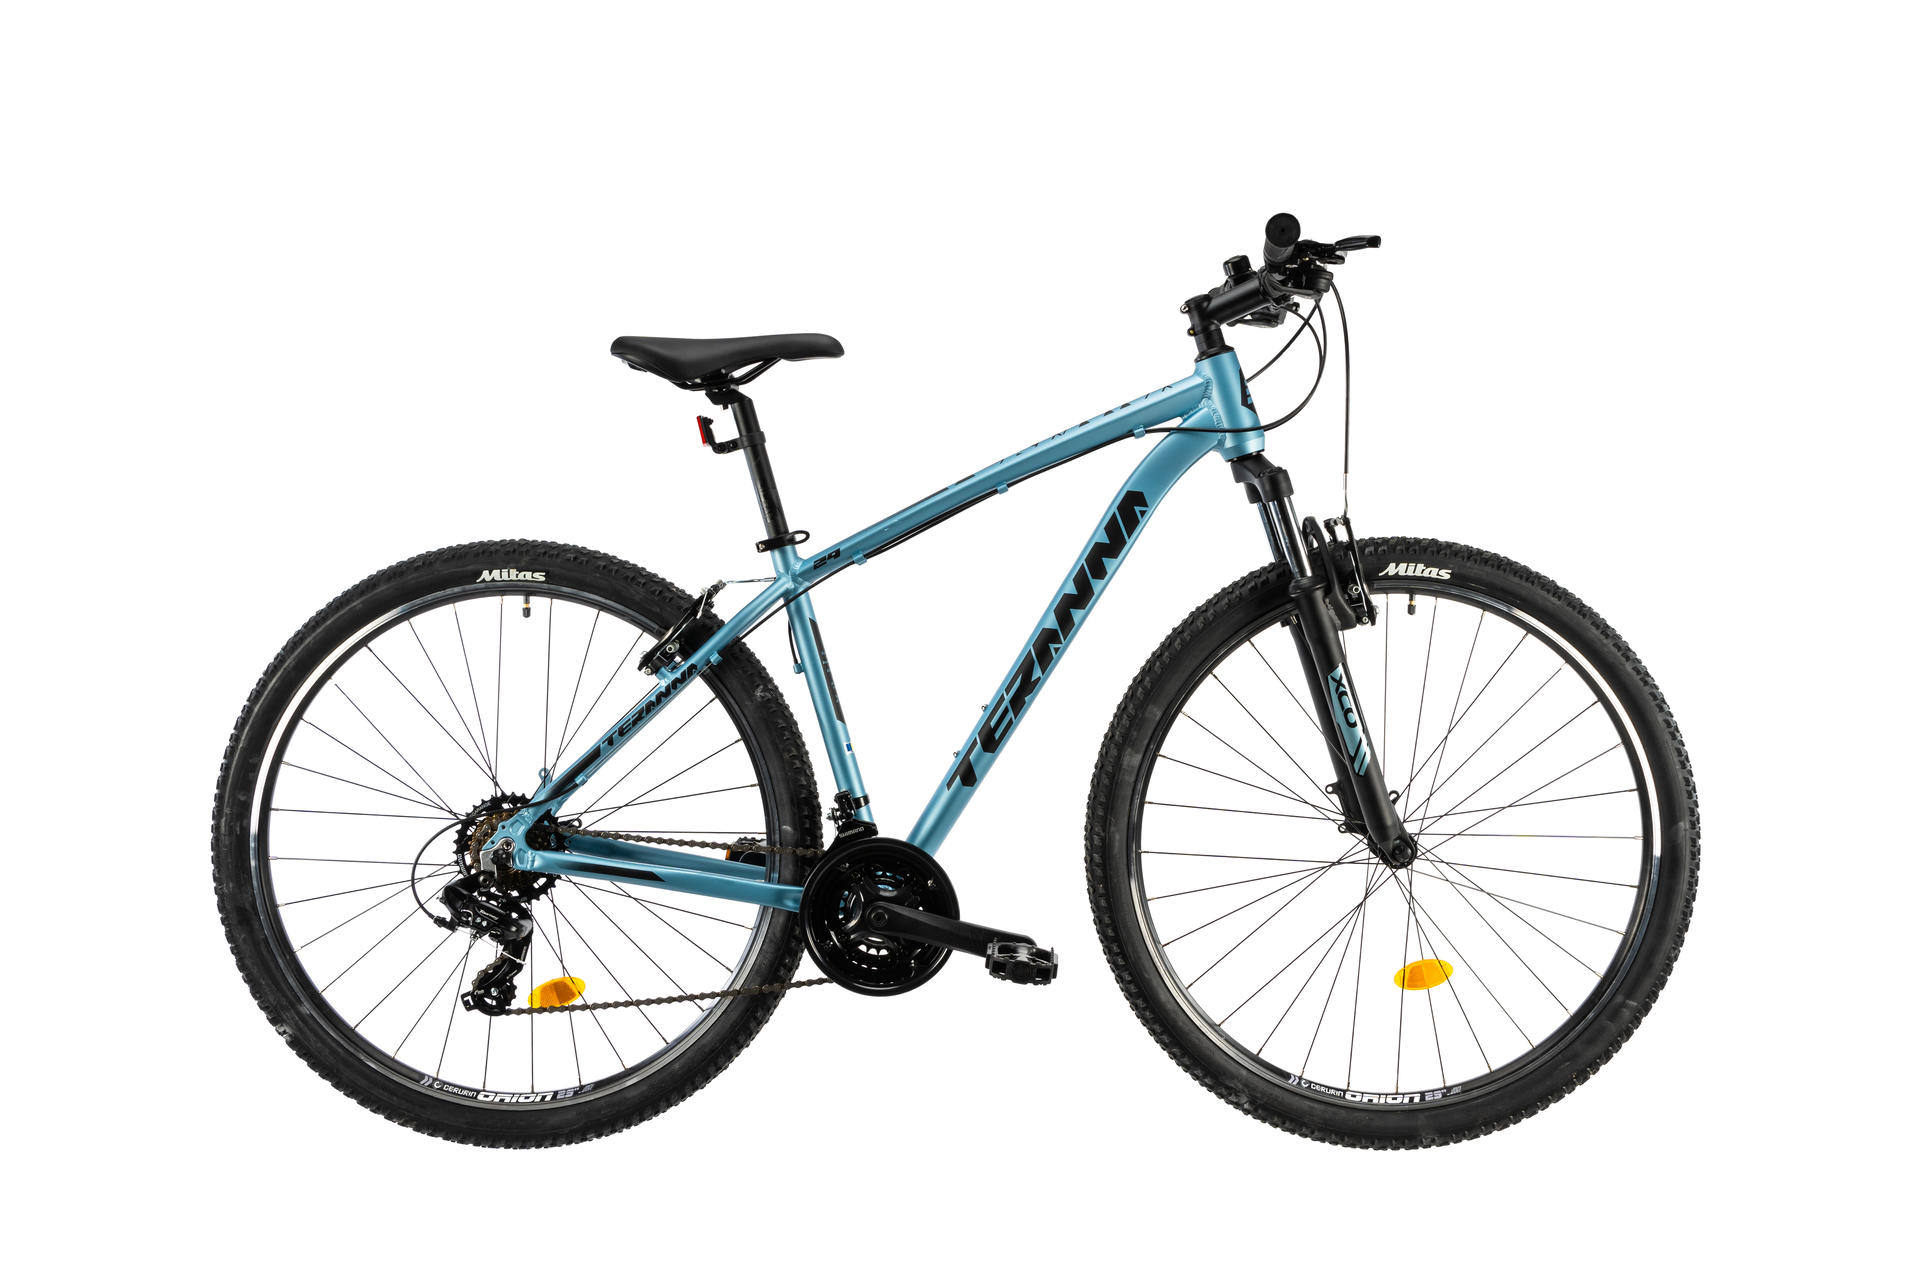 Mountain bike DHS 2923 Blue light 457mm